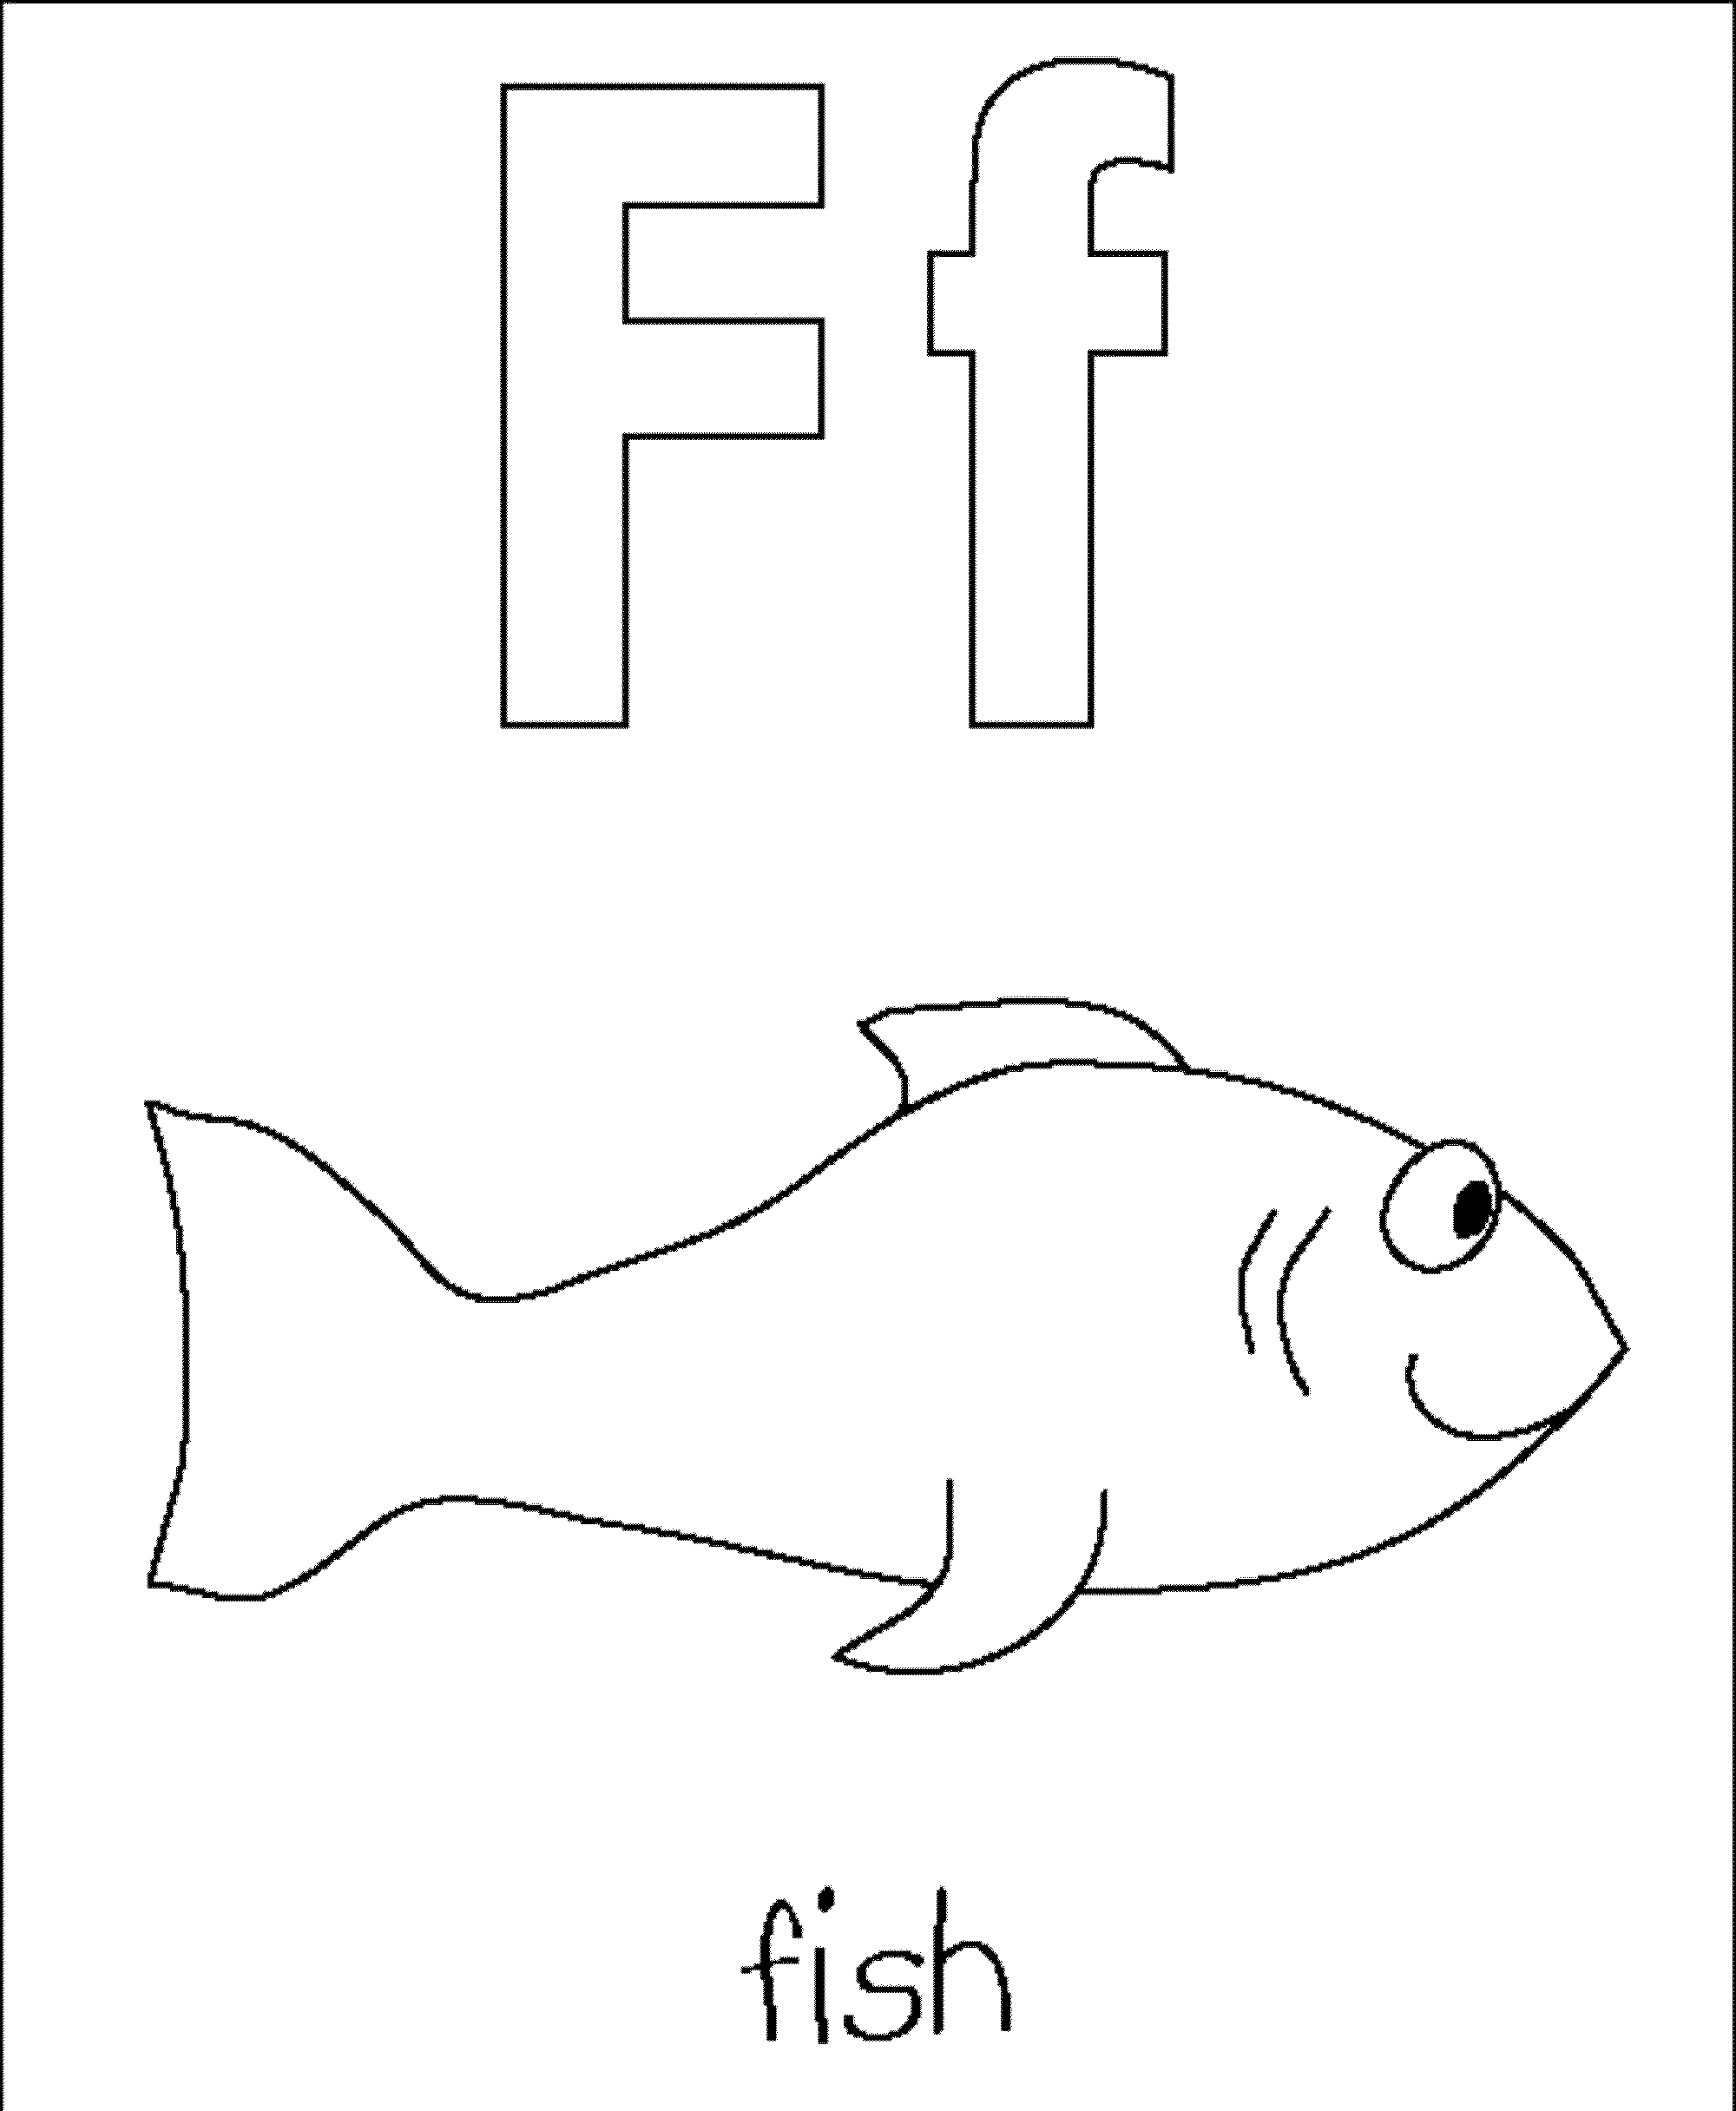 letter f coloring page fish Consonant Sound Coloring Pages